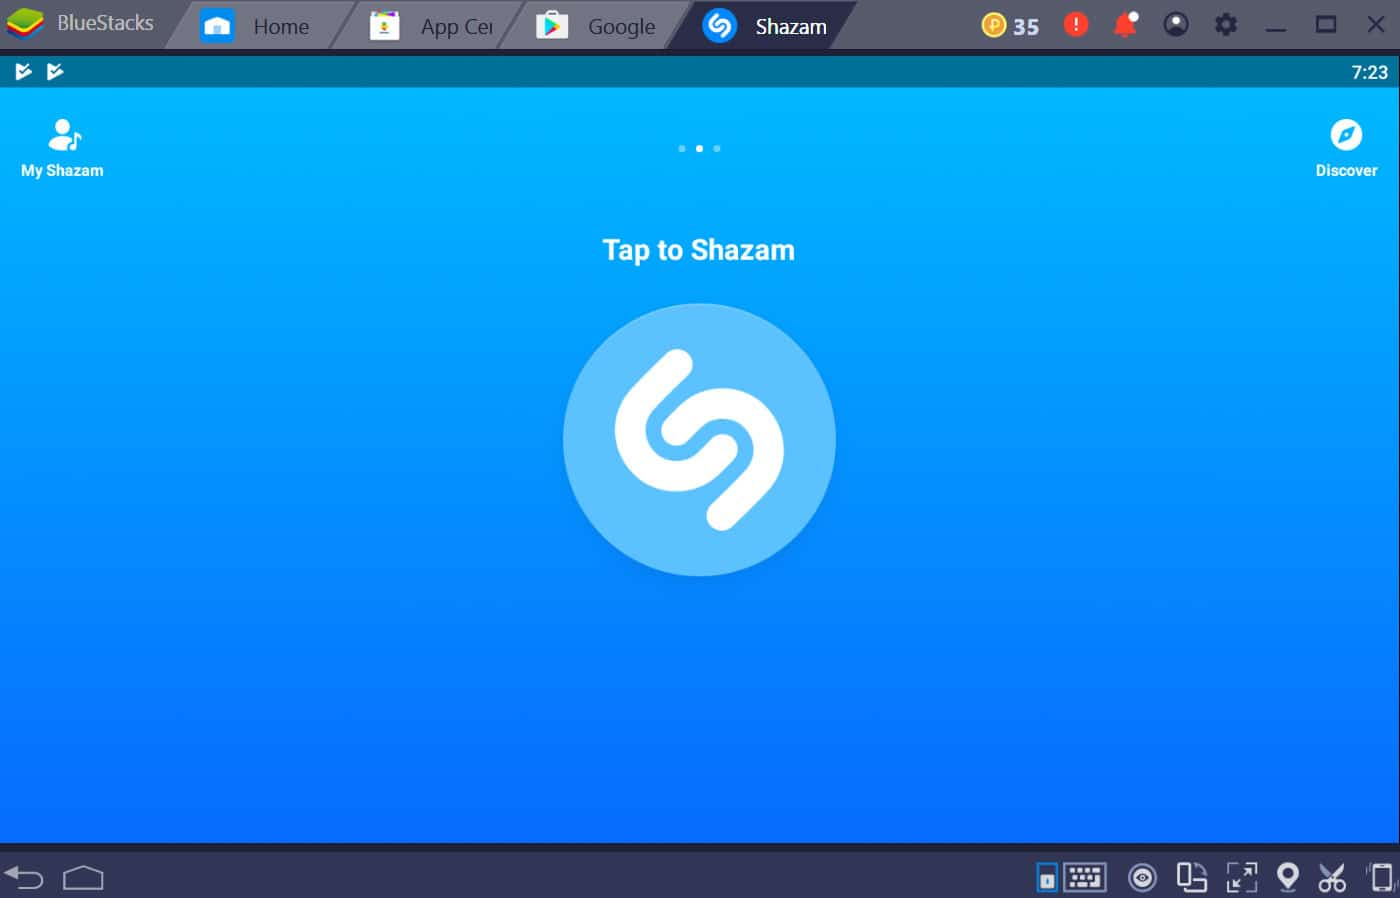 Kik bluestacks white screen | Bluestacks 2 5 51 6274 (free)  2019-06-12